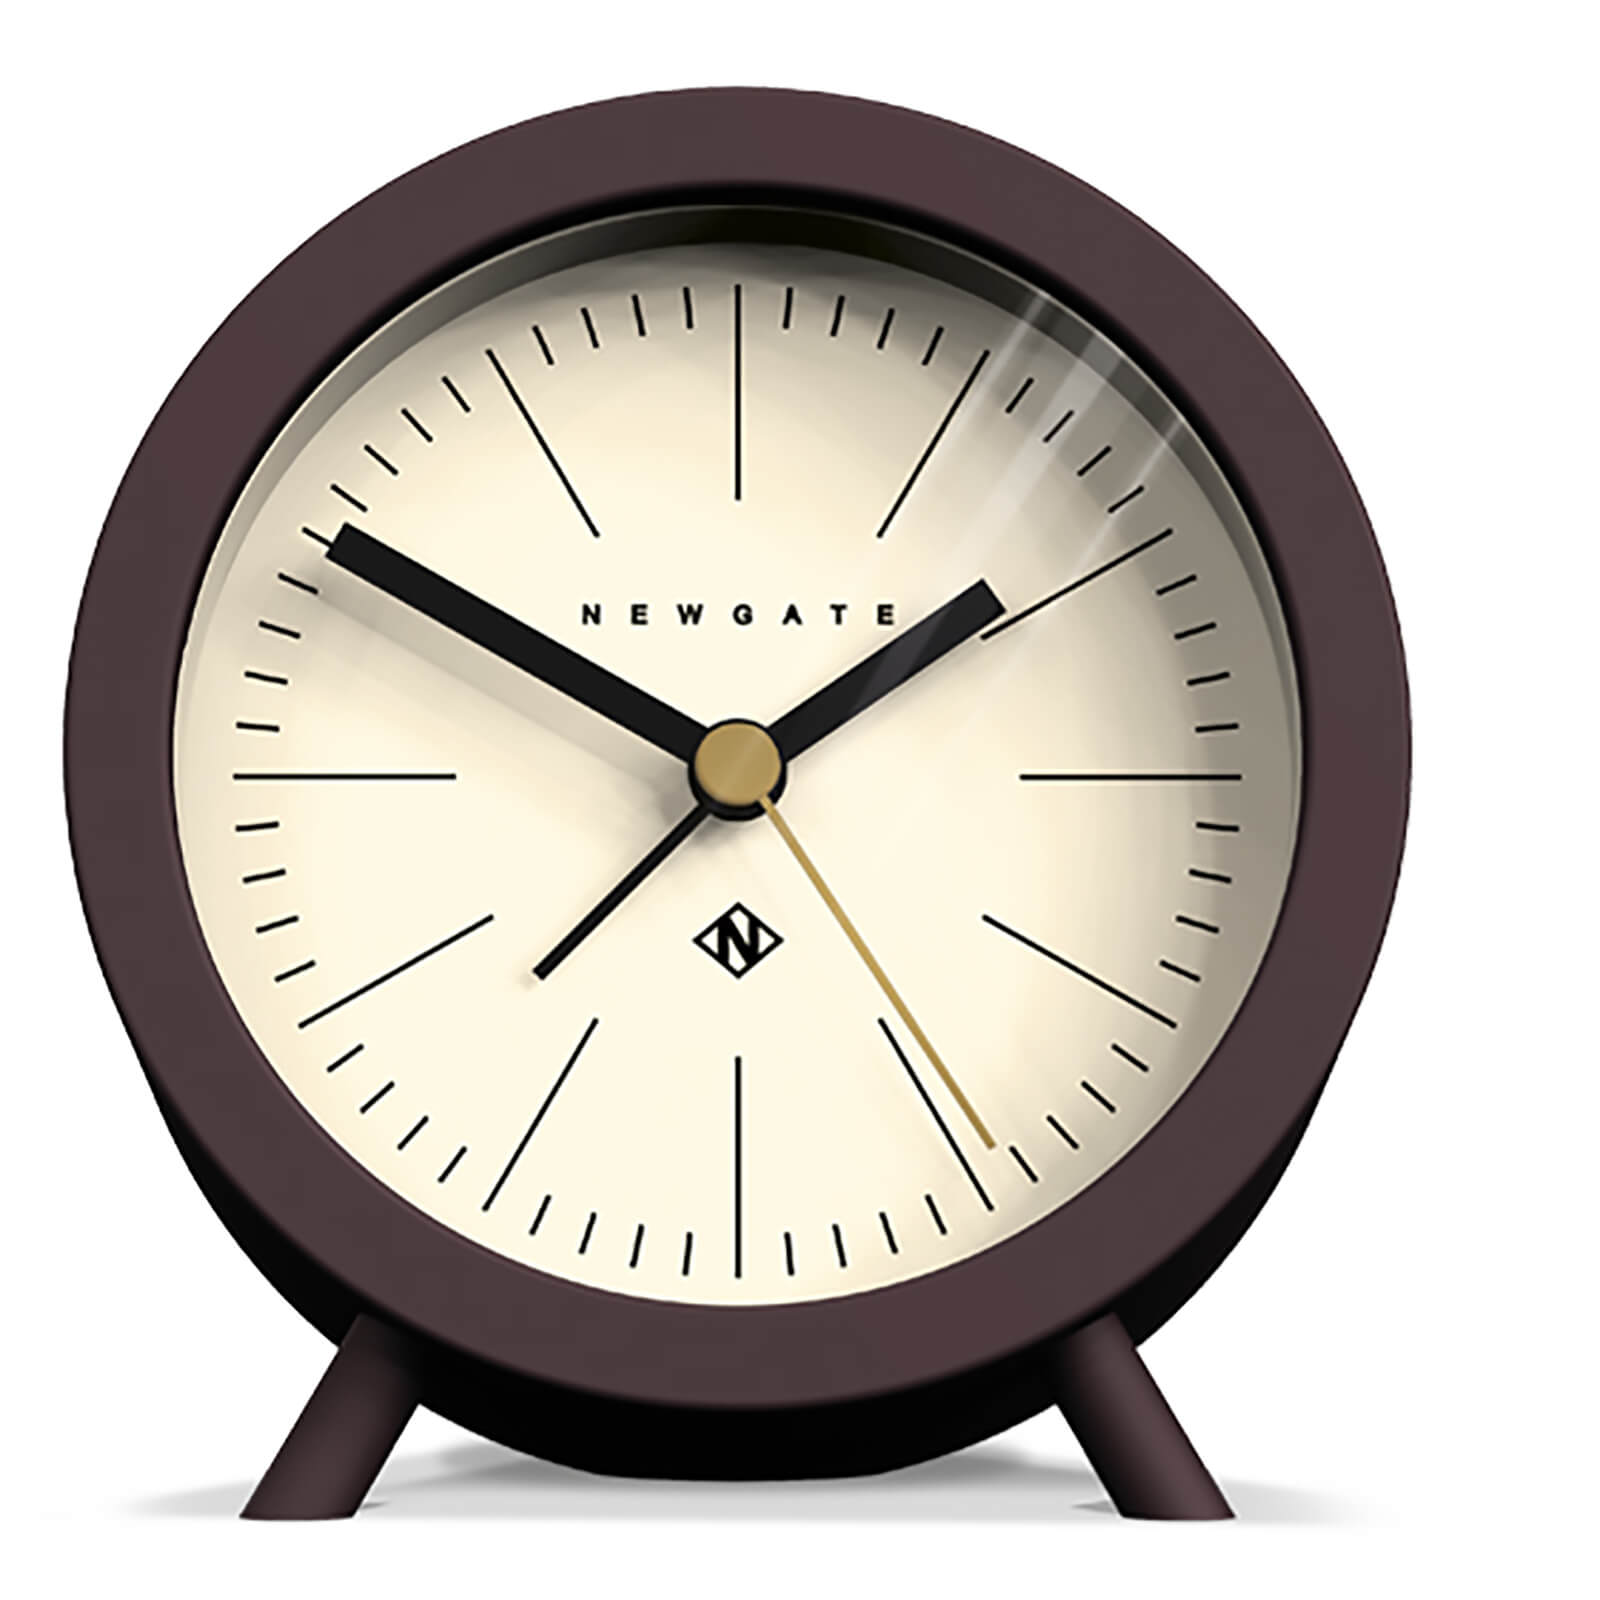 Newgate Fred Barrel Alarm Clock - Chocolate Black